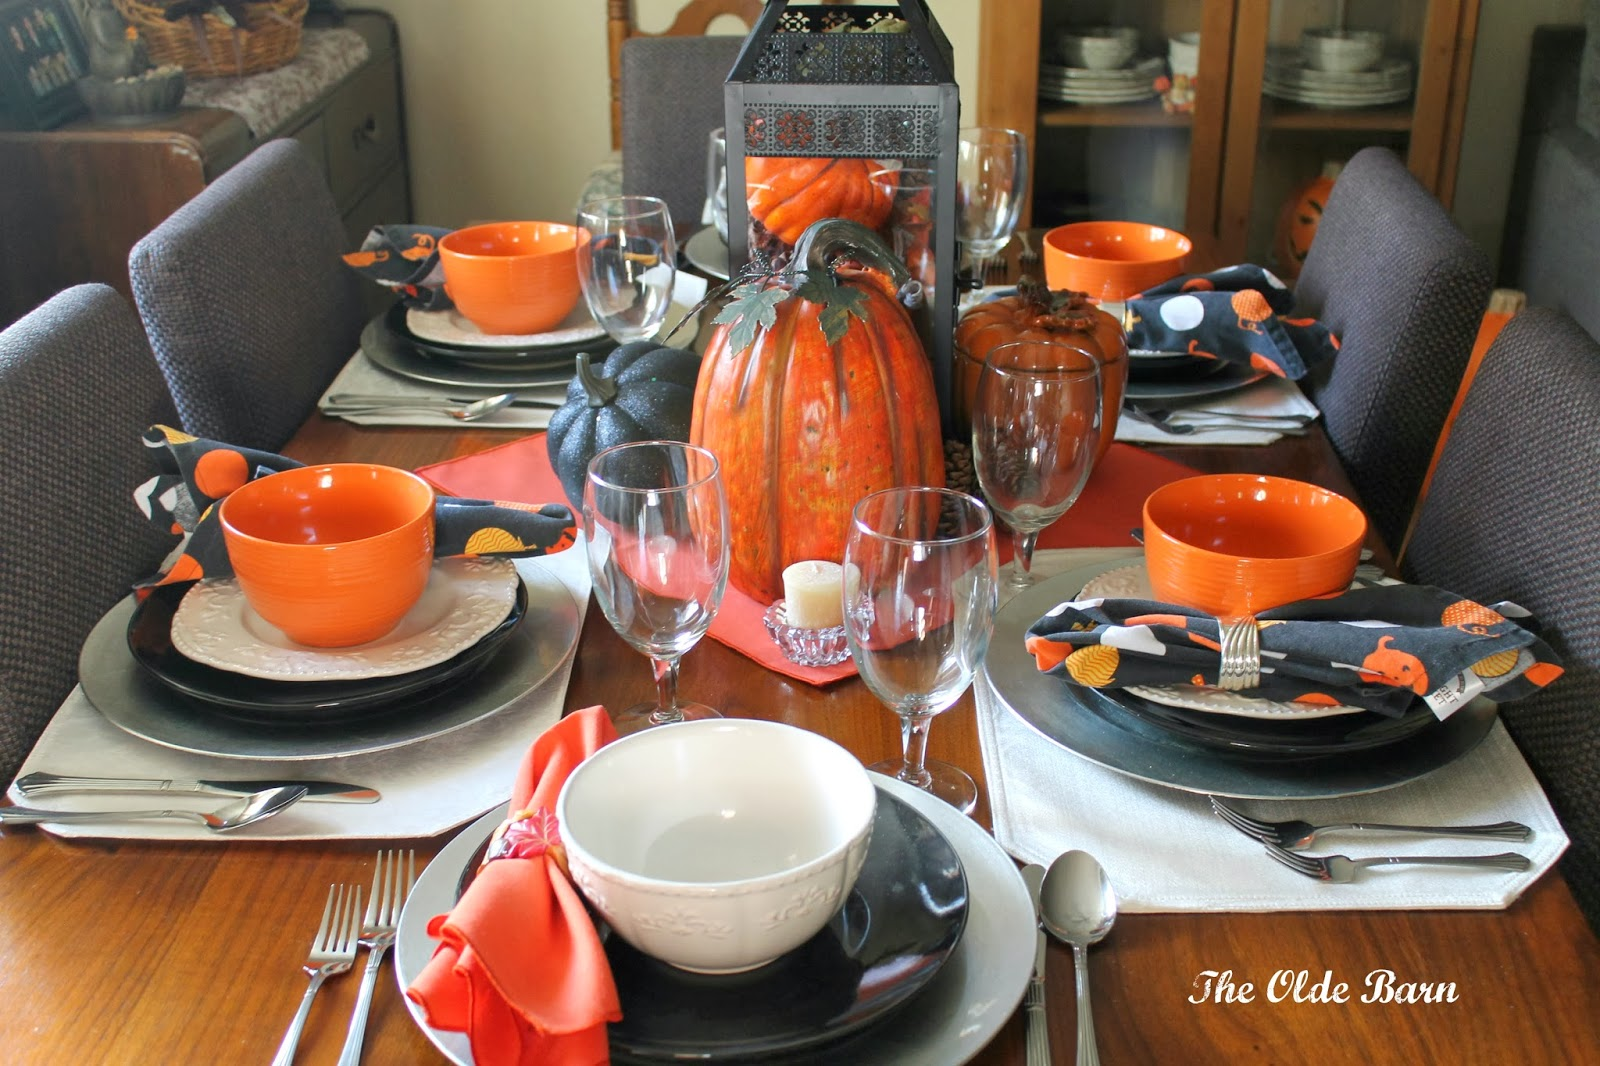 Halloween tablescapes - I Challenged Myself To Put Together A Unique Halloween Tablescape On A Budget First I Shopped At Home Then I Shopped At The Dollar Tree